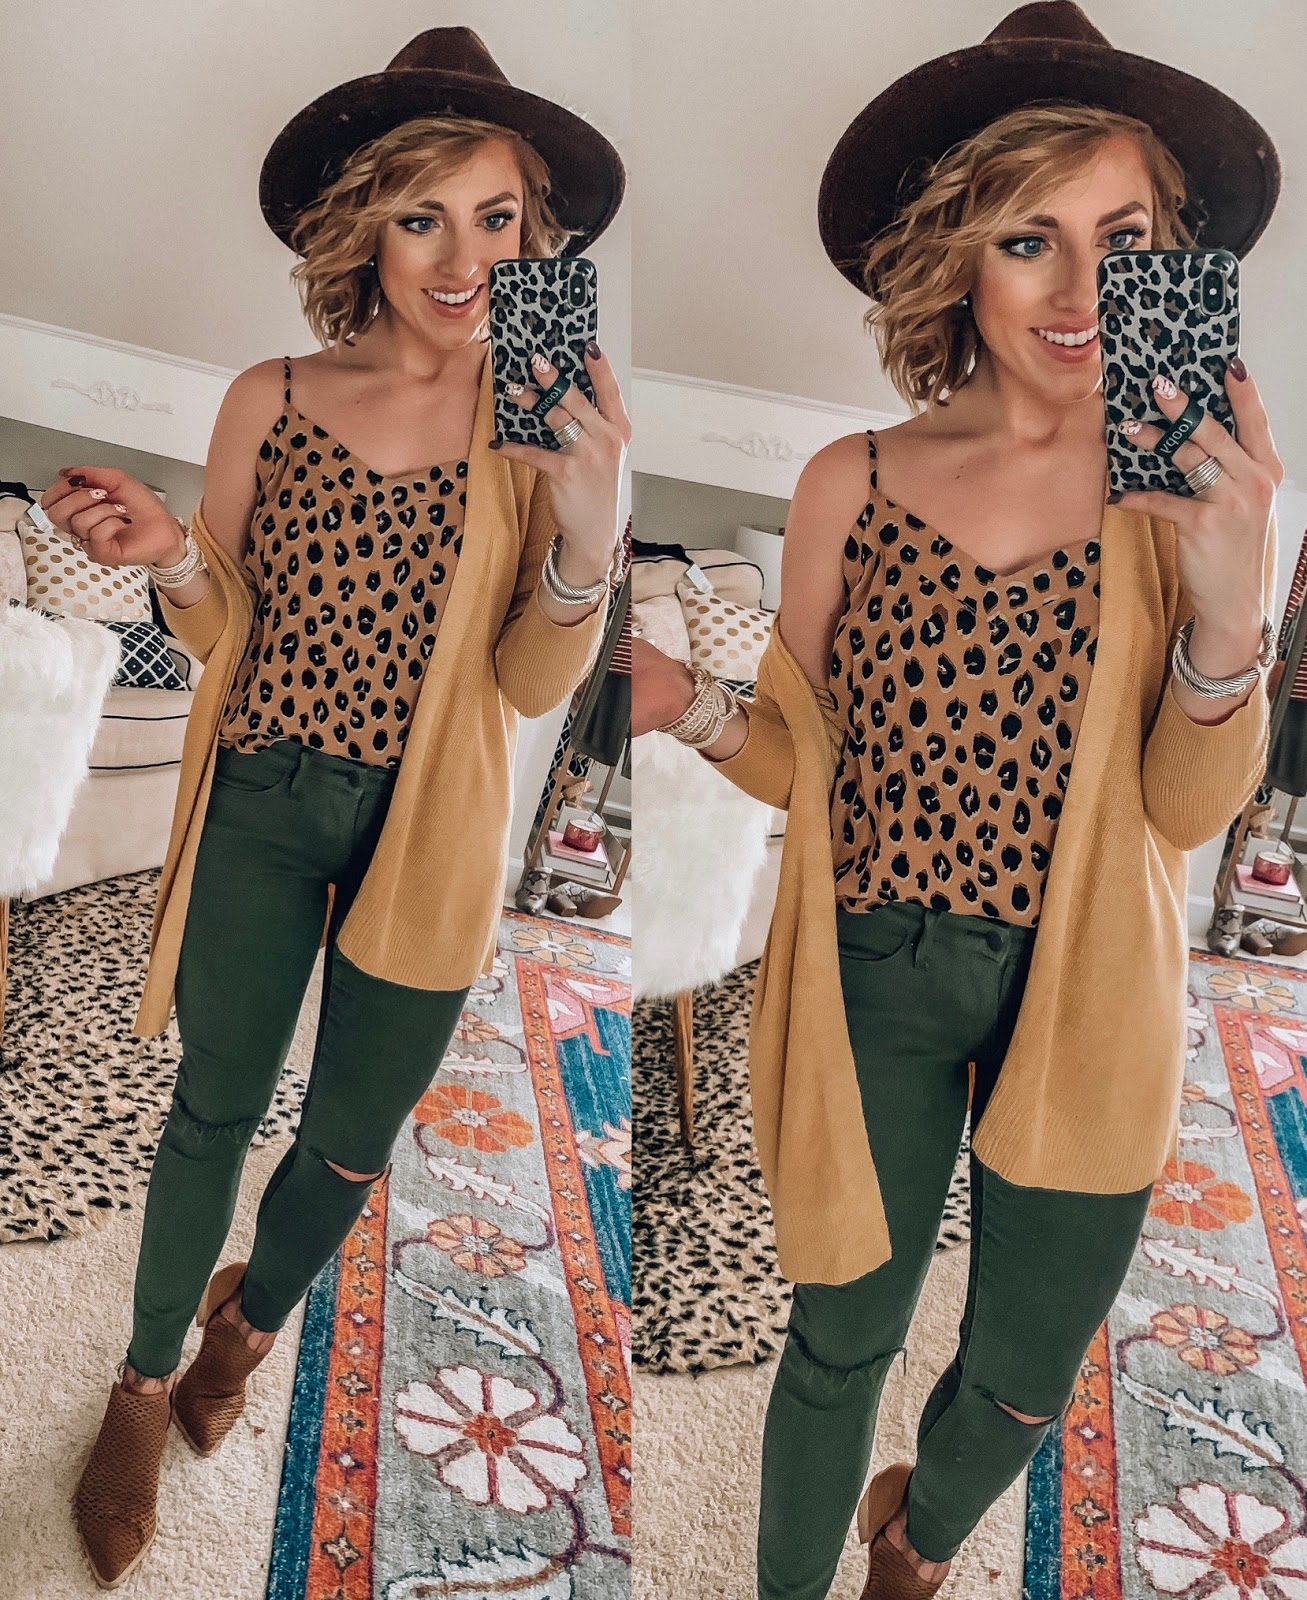 Target Fall Finds: Part Three - $23 Ribbed Cardigan, Leopard Cami and Olive Green Jeggings - Something Delightful Blog #FallStyle #TargetStye